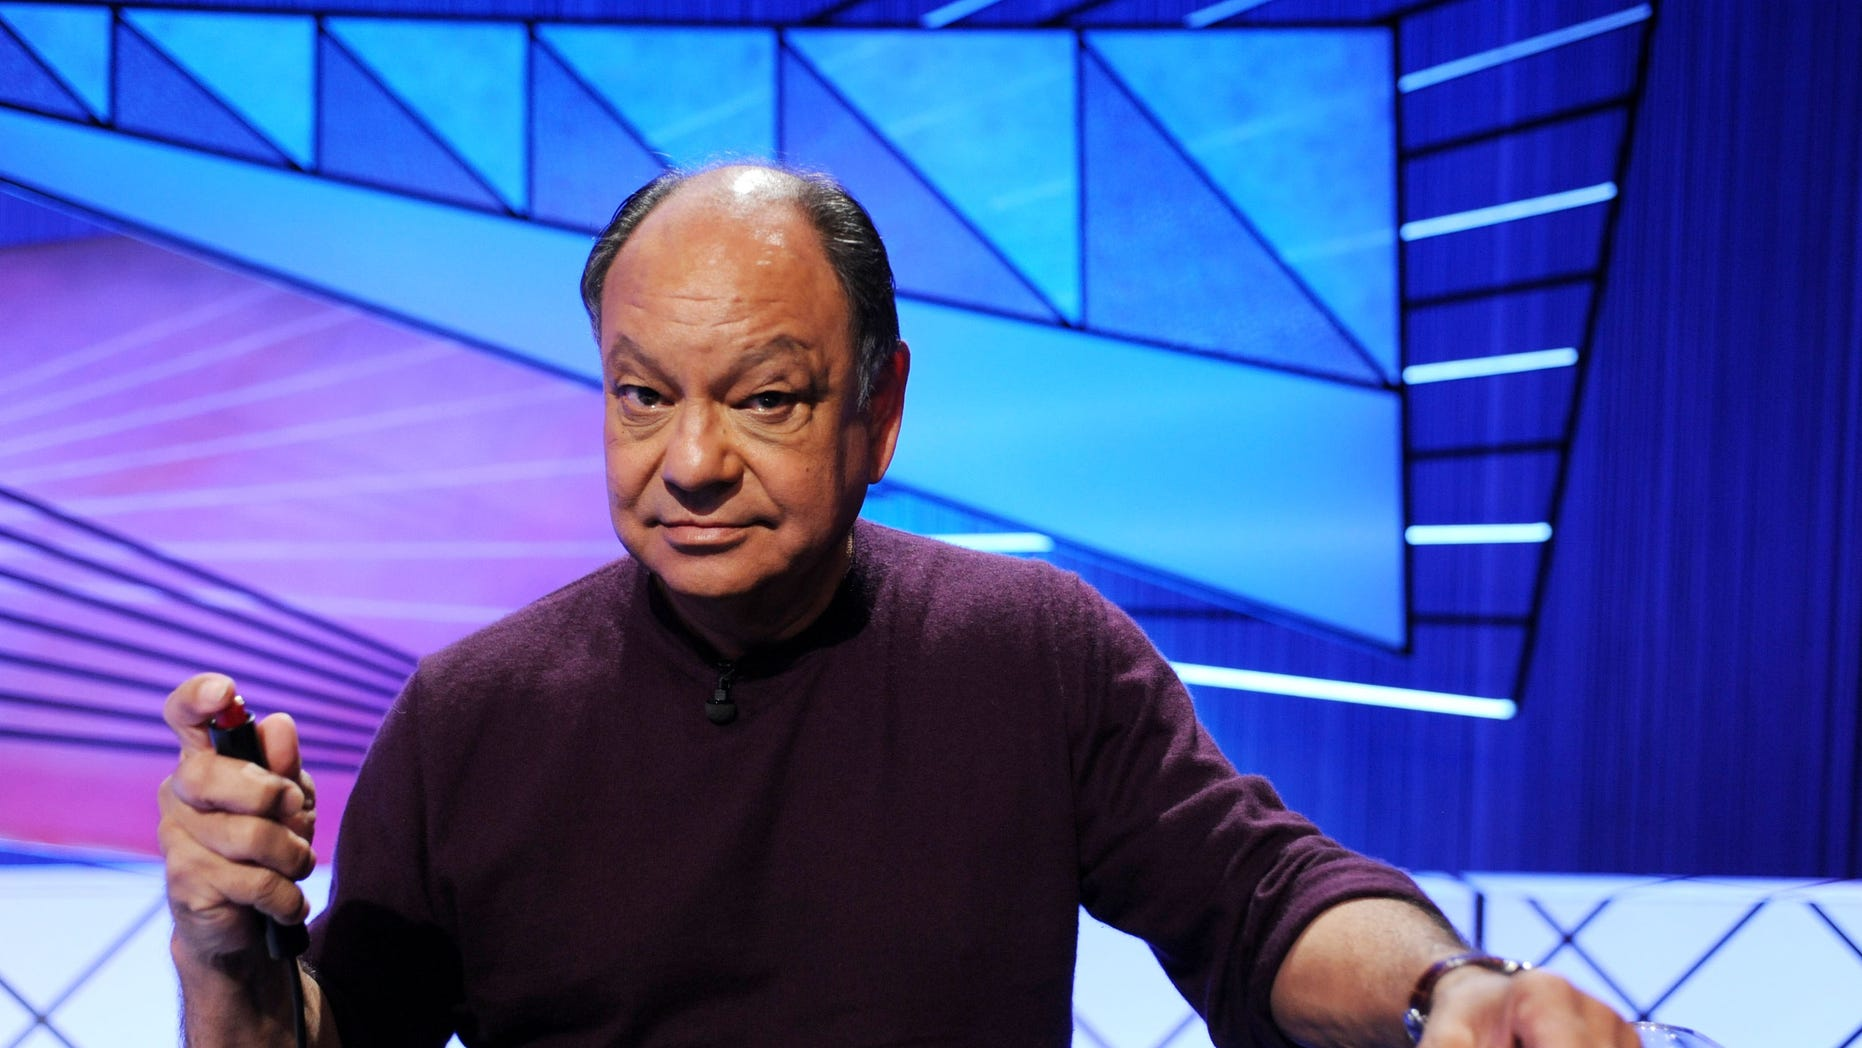 Cheech Marin is part of a Latino cast that also includes Diana Maria Riva, Lupe Ontiveros and Eugenio Derbez.